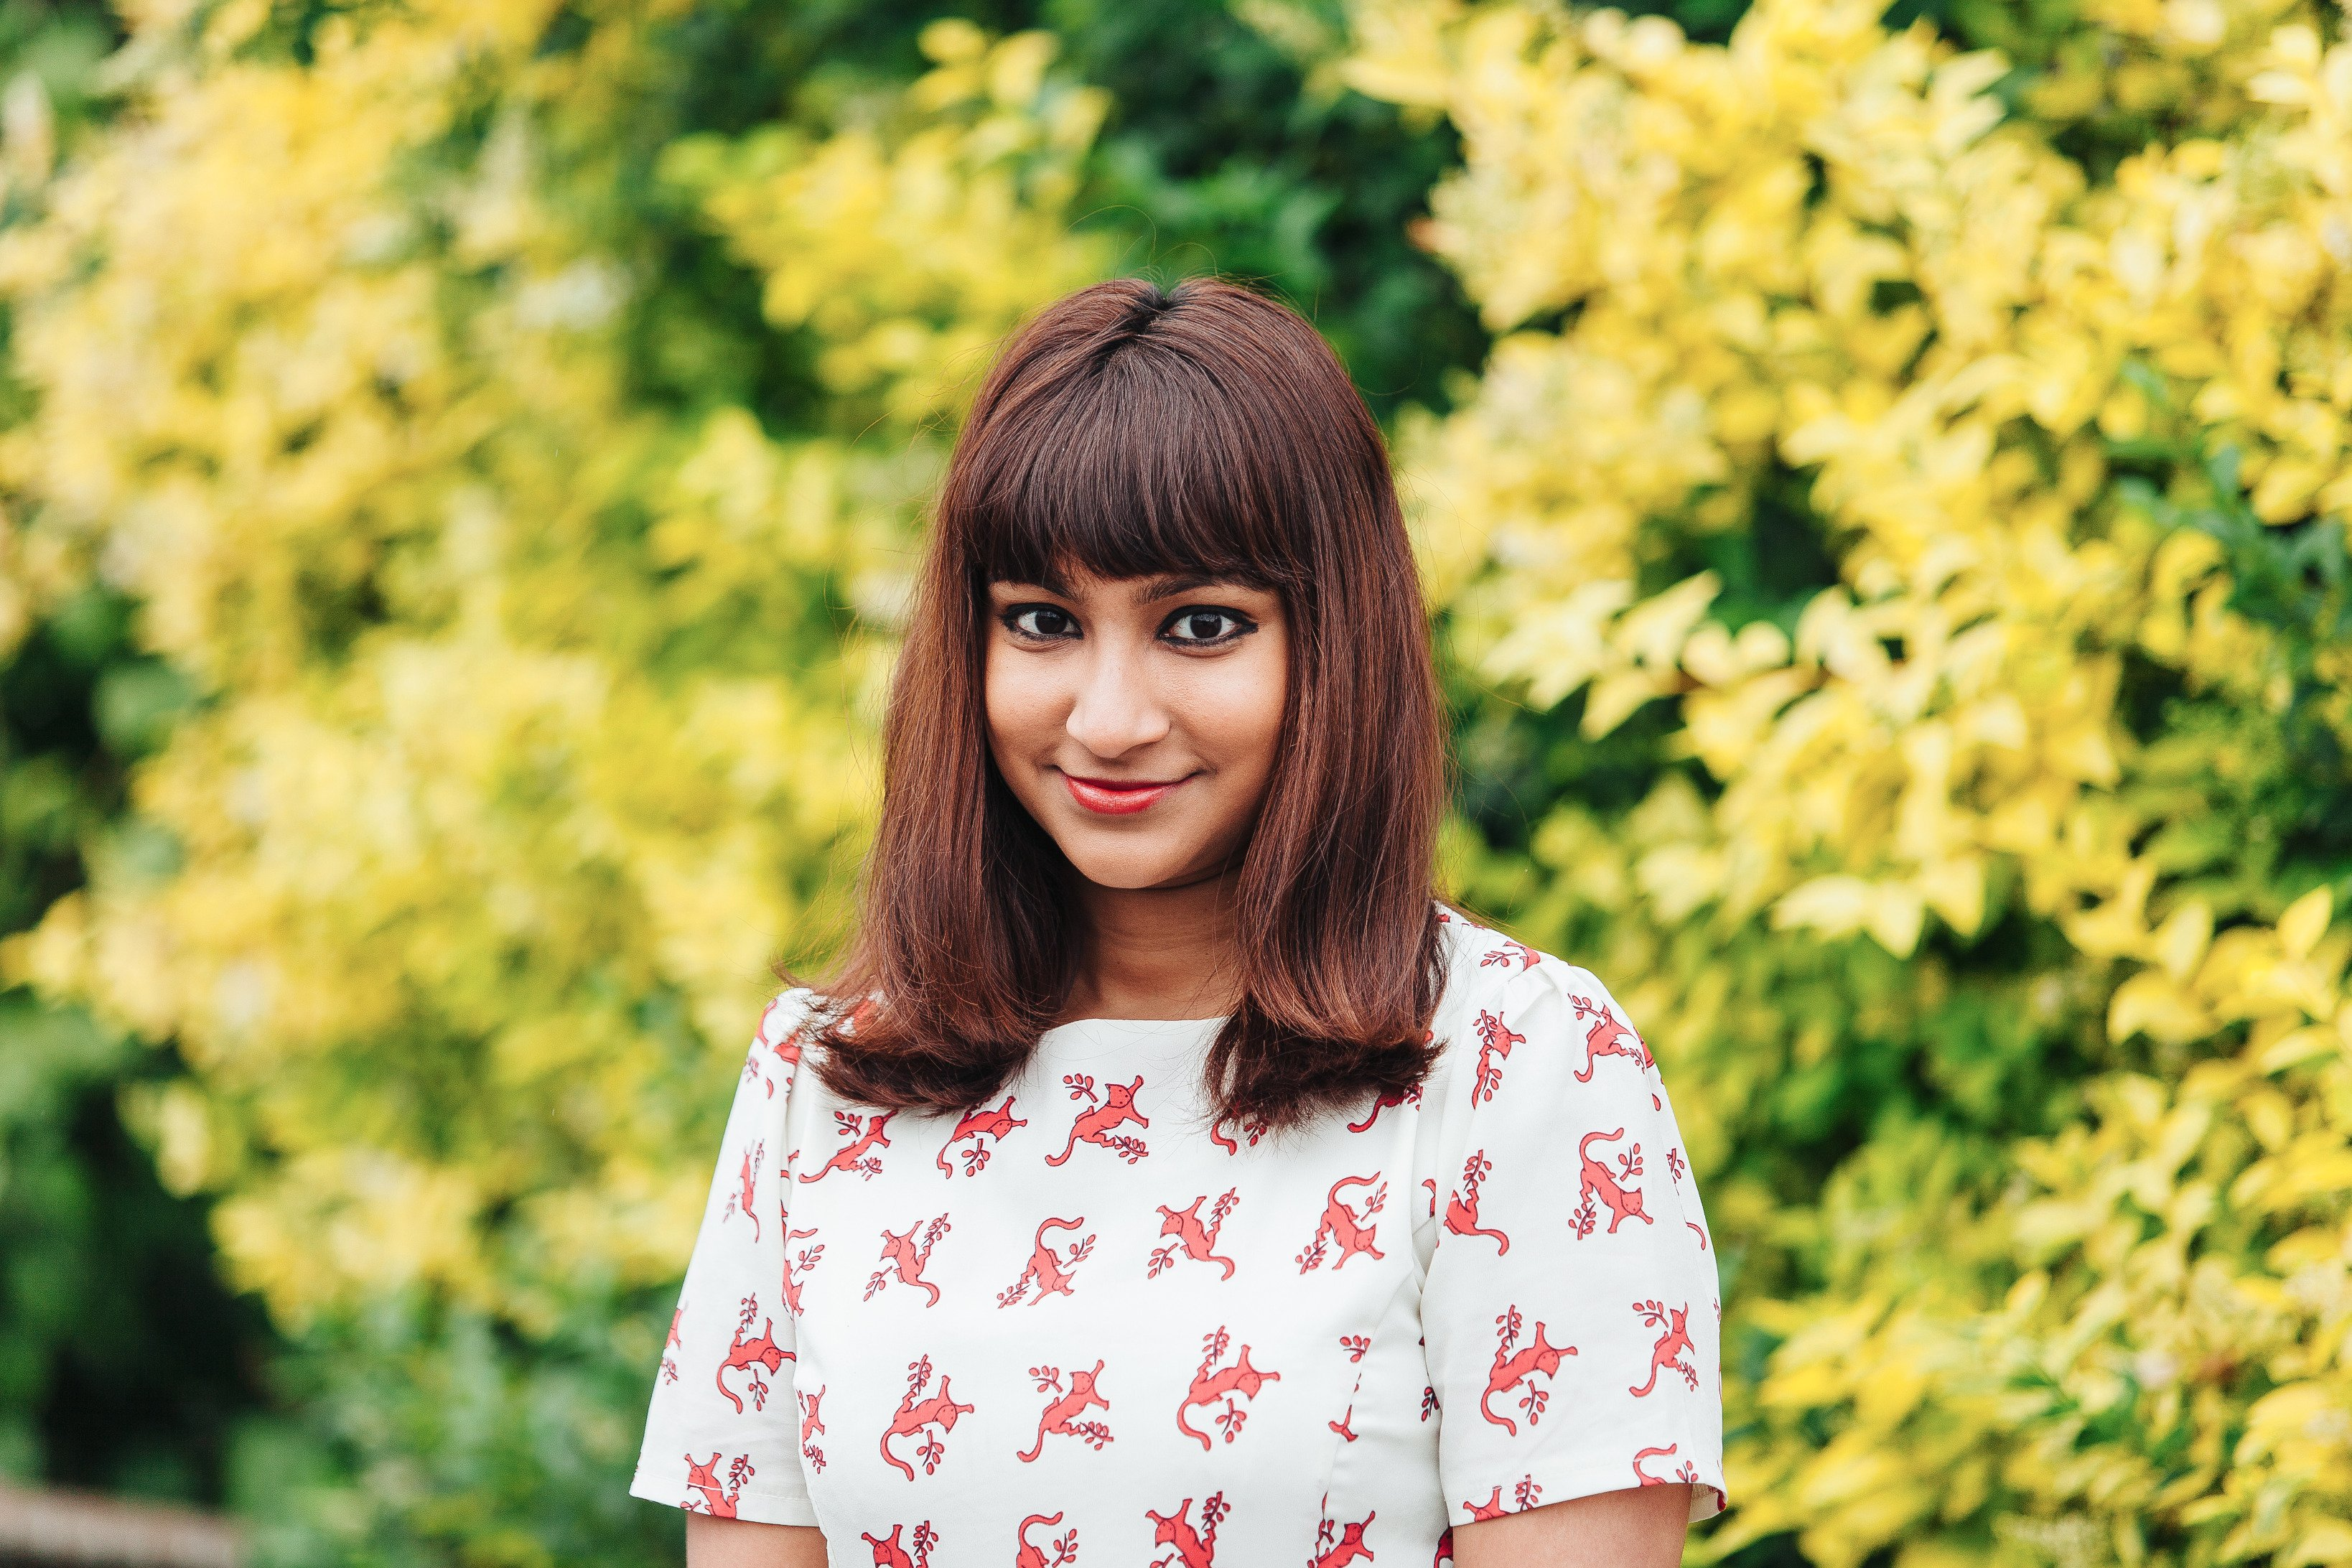 Photograph of Melbourne writer Sonia Nair